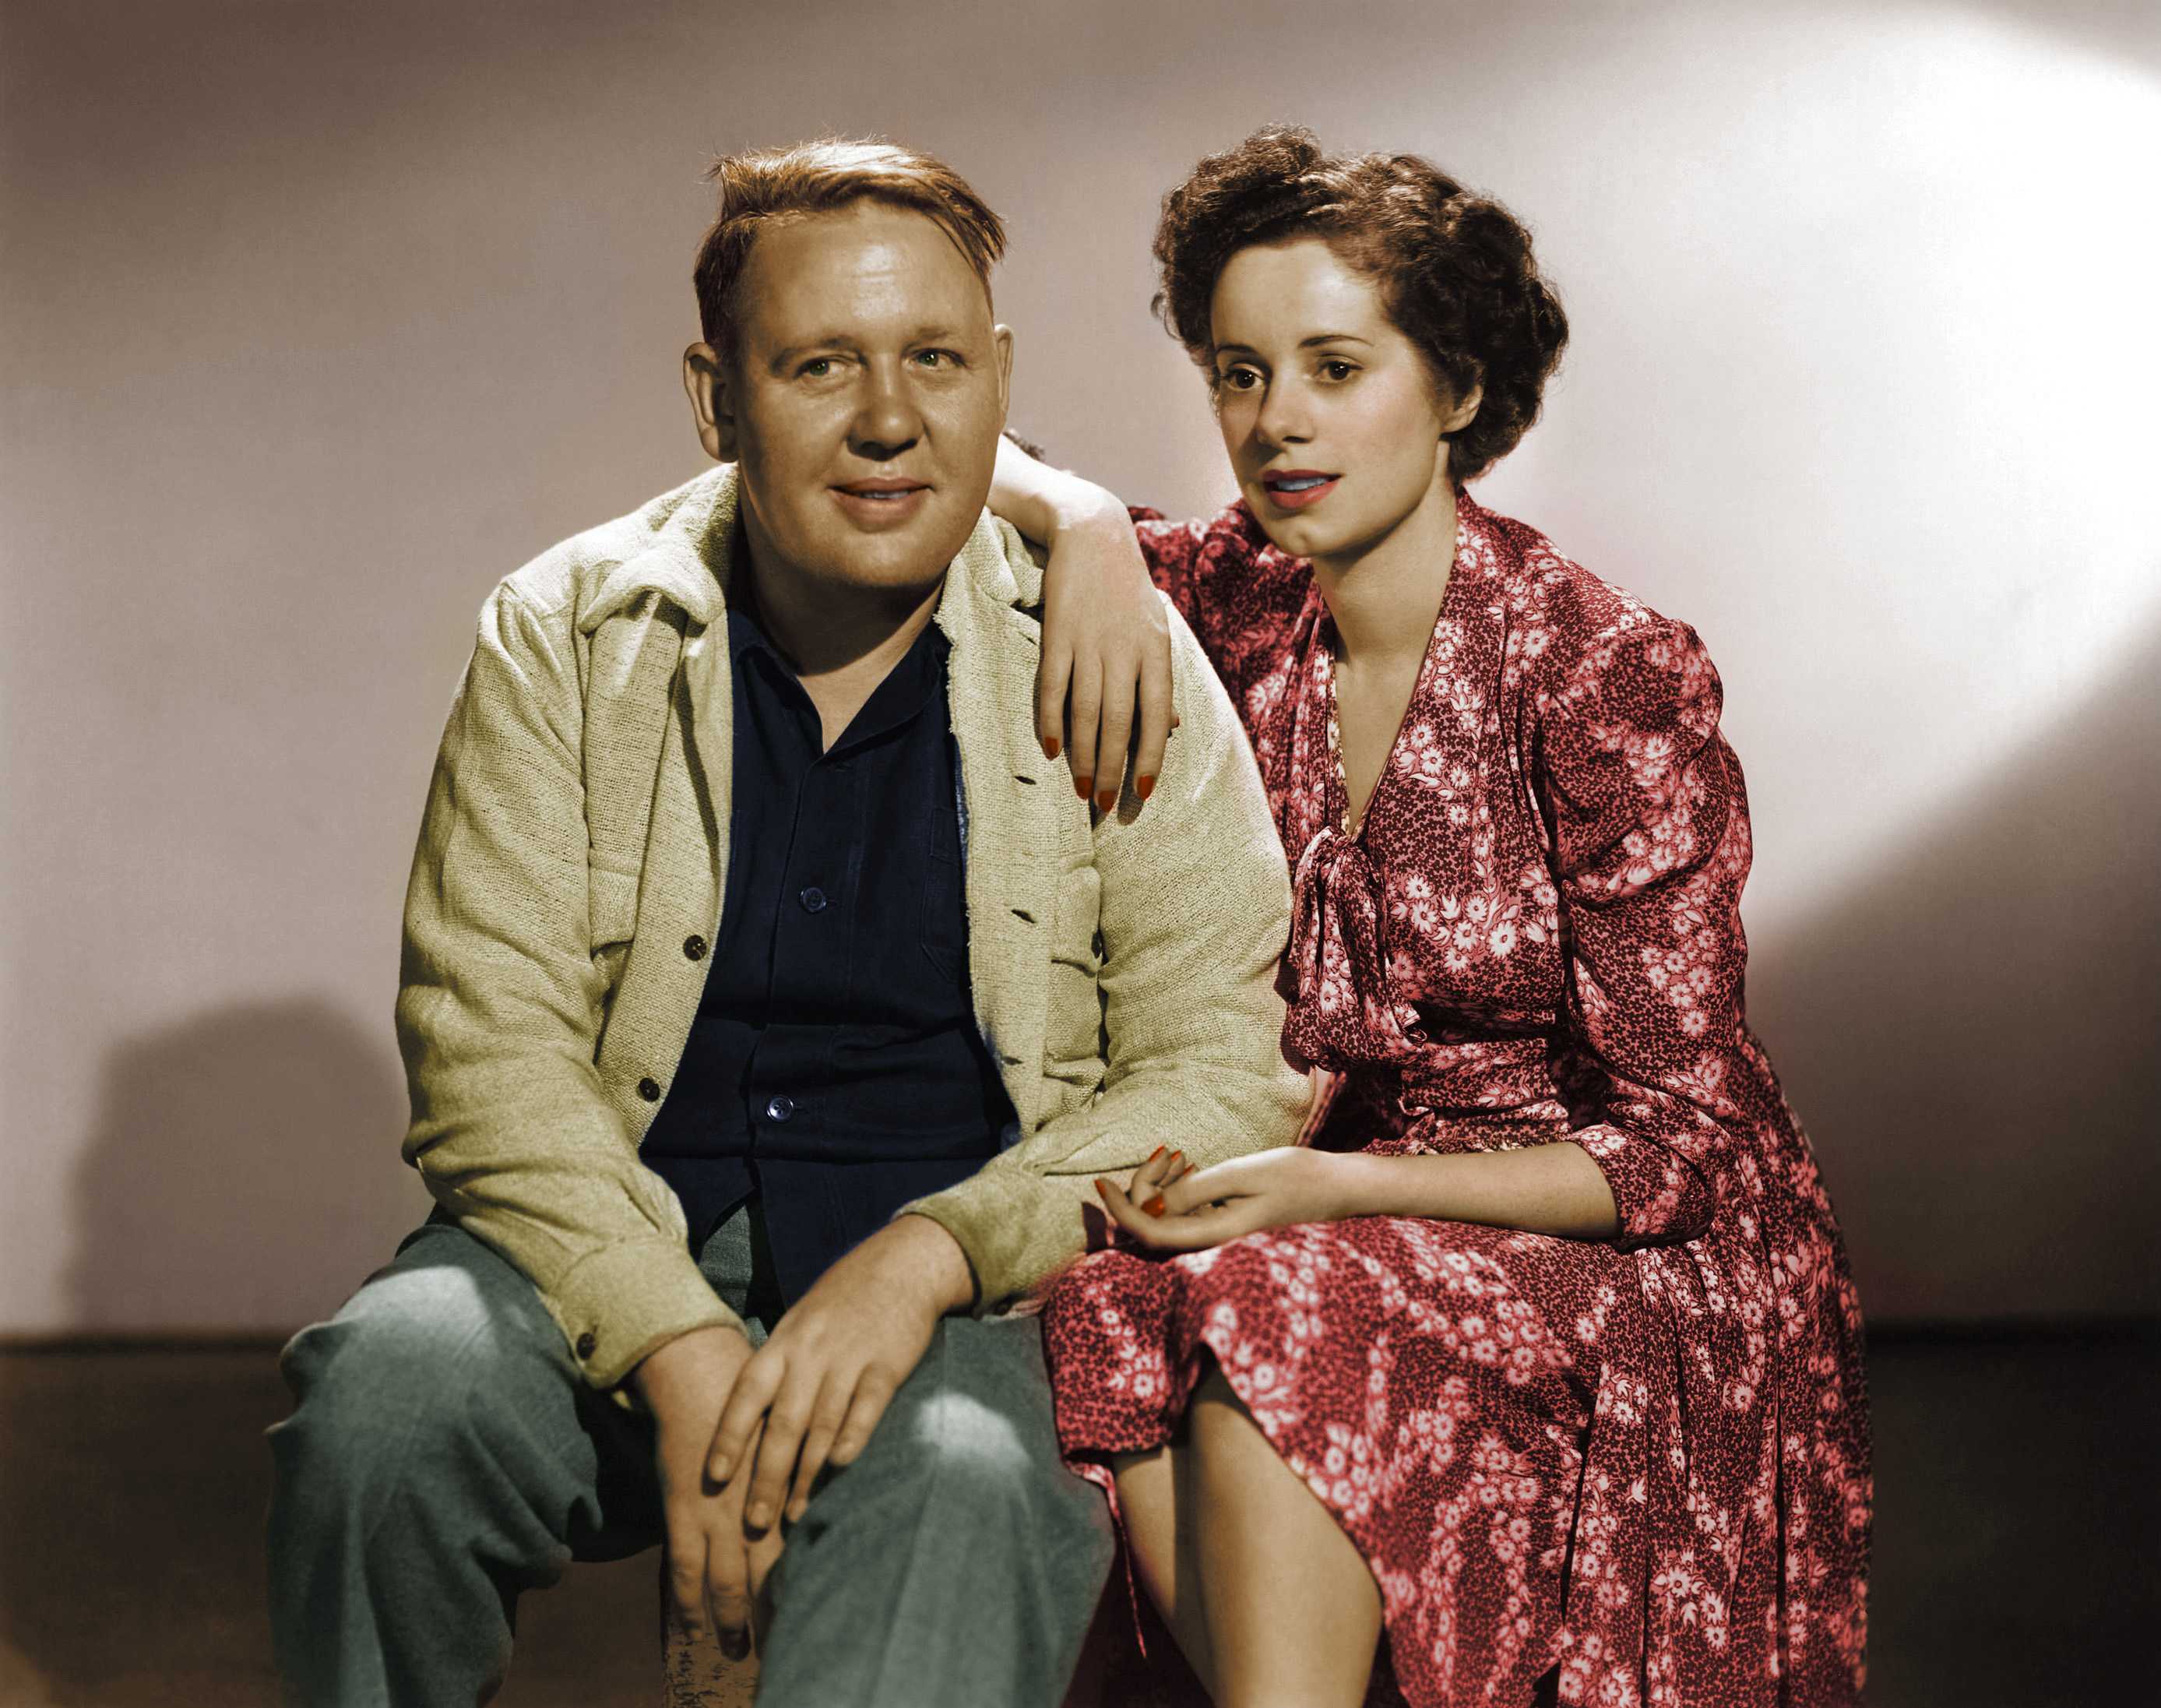 Charles Laughton with Elsa Lanchester